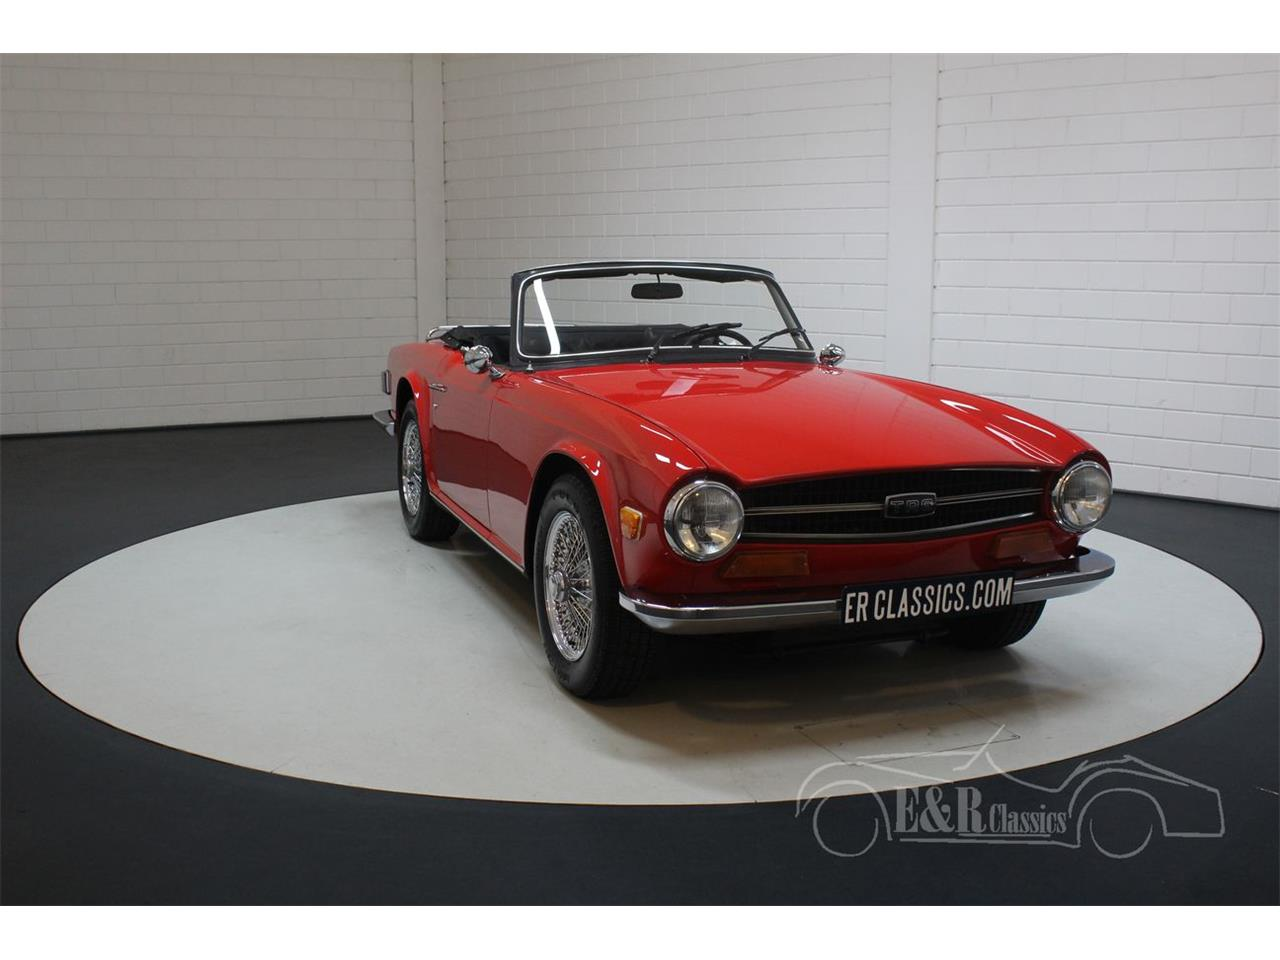 Large Picture of Classic 1973 Triumph TR6 located in Noord Brabant - $25,800.00 - PWMQ